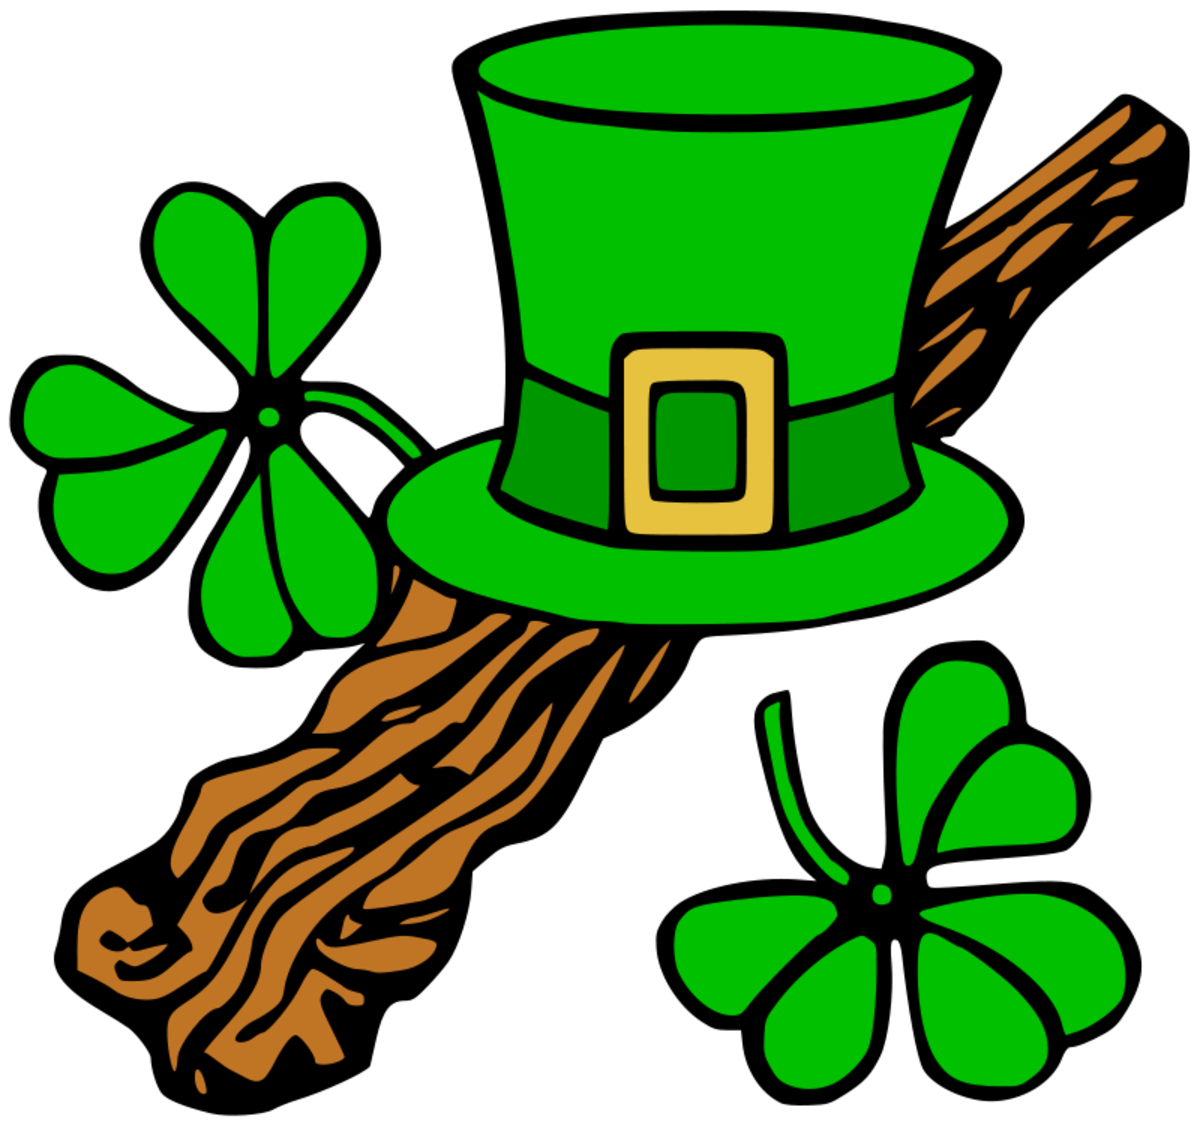 Leprechaun Hat, Shillelagh and Shamrocks